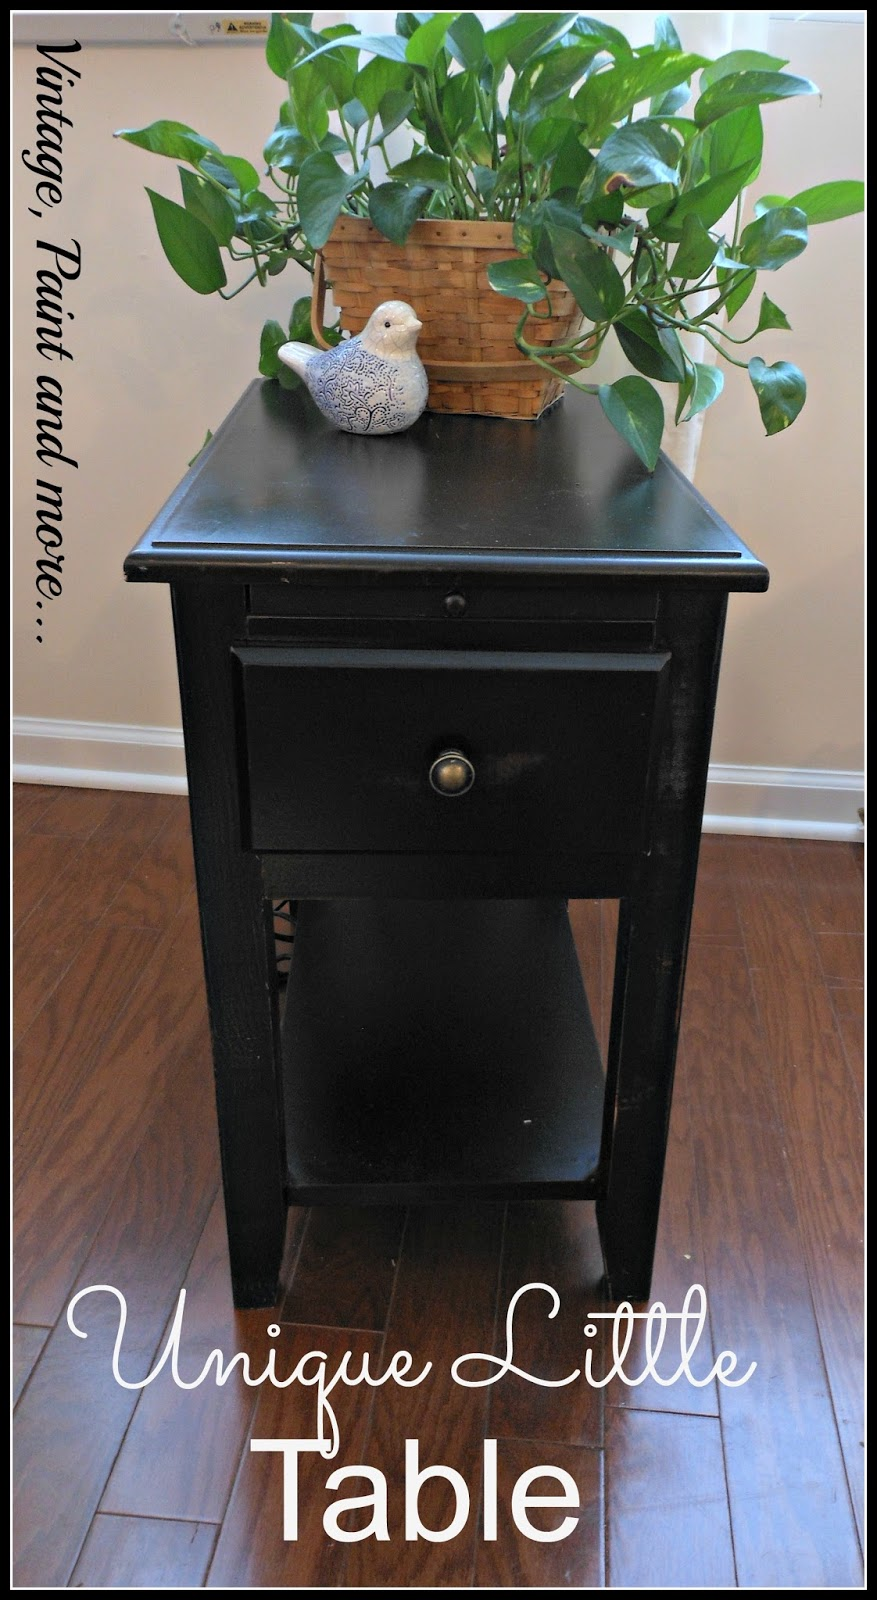 a small side table with built in electrical outlets and USB ports